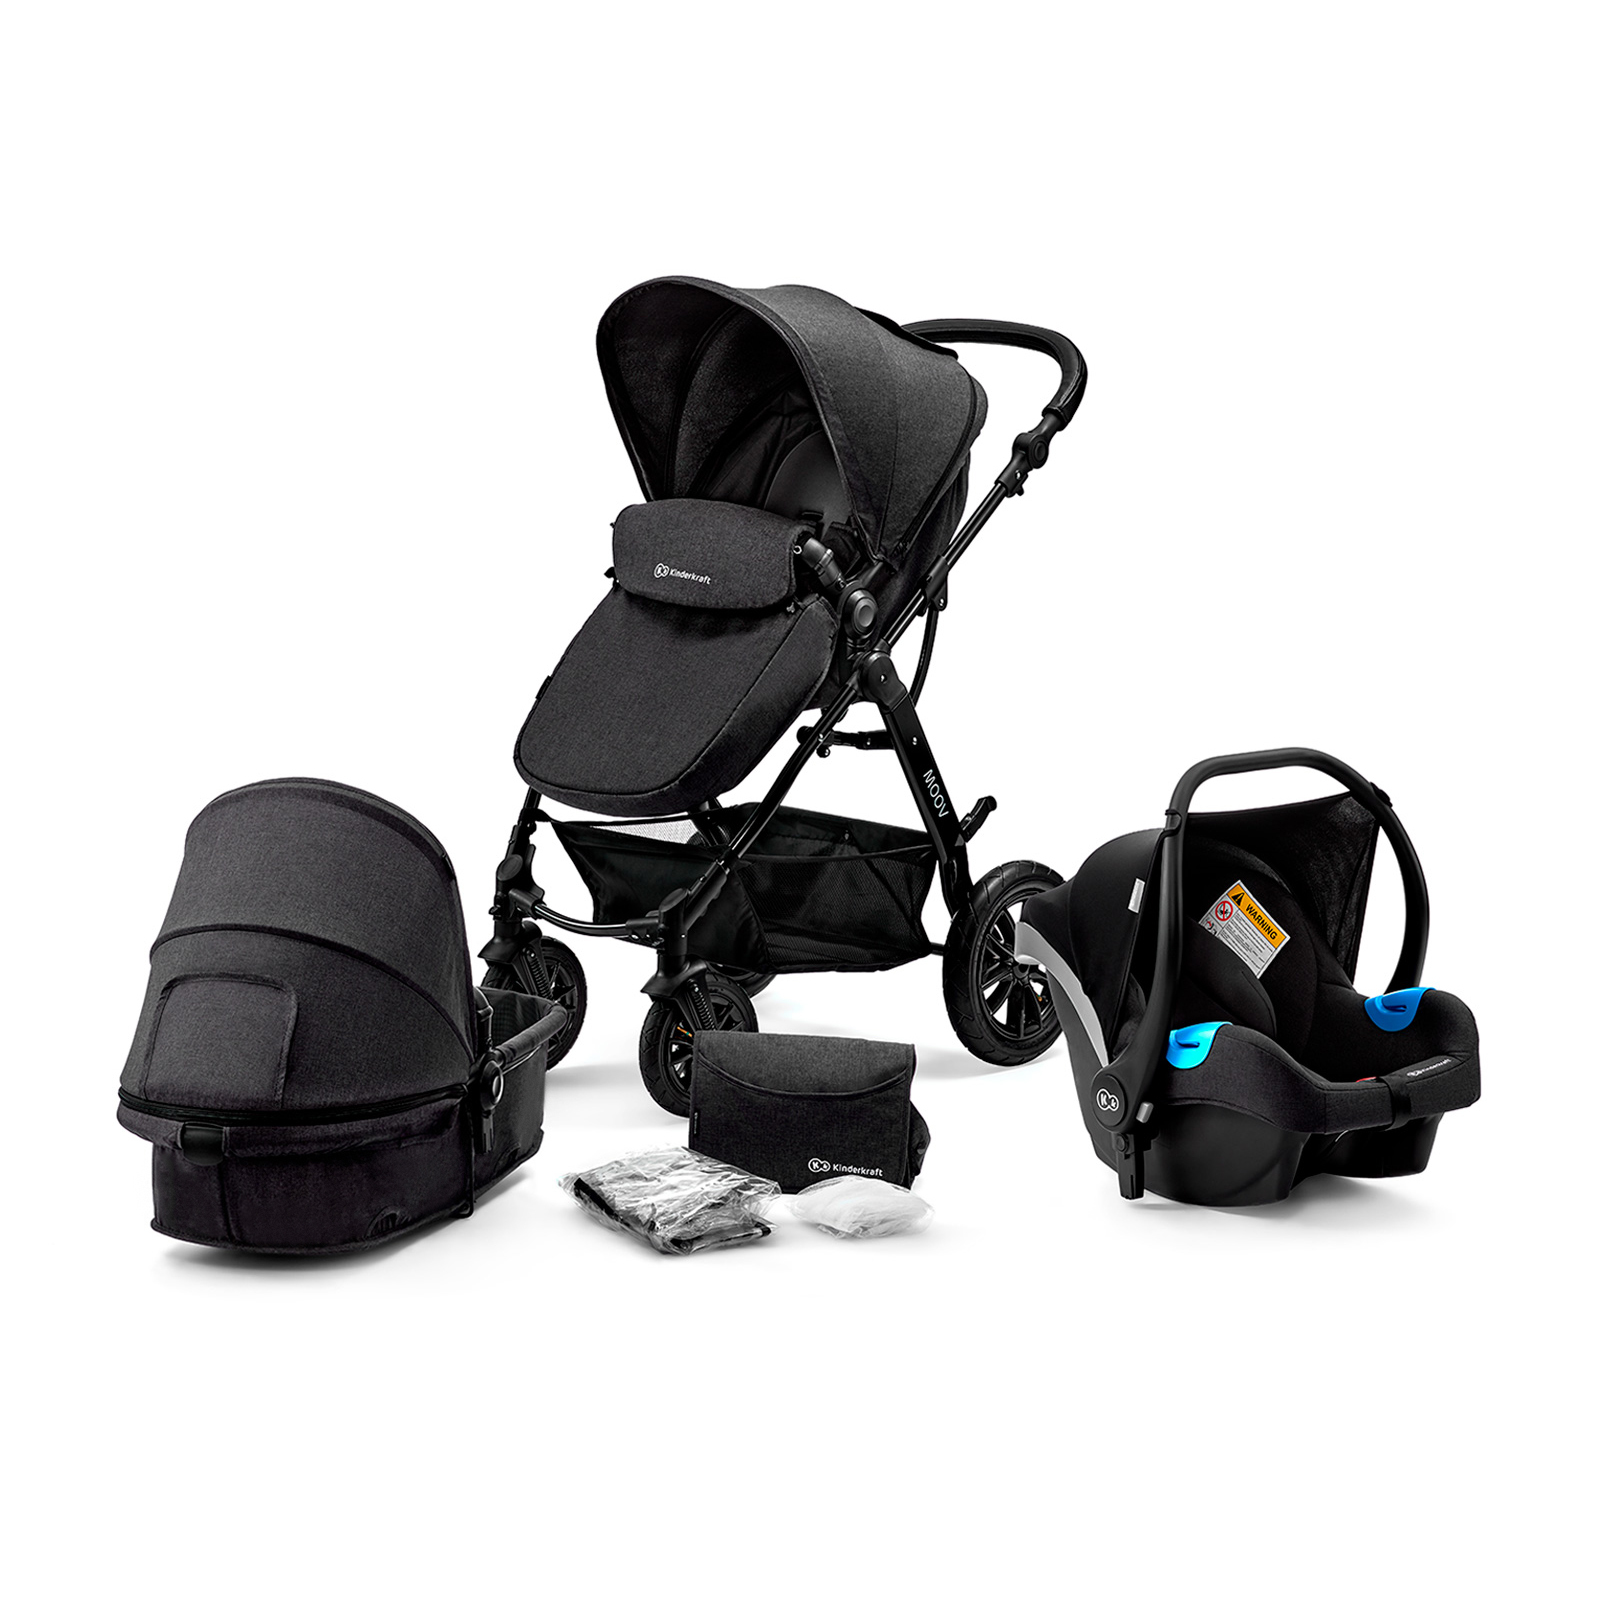 Коляска 3 в 1 Kinderkraft Moov Black